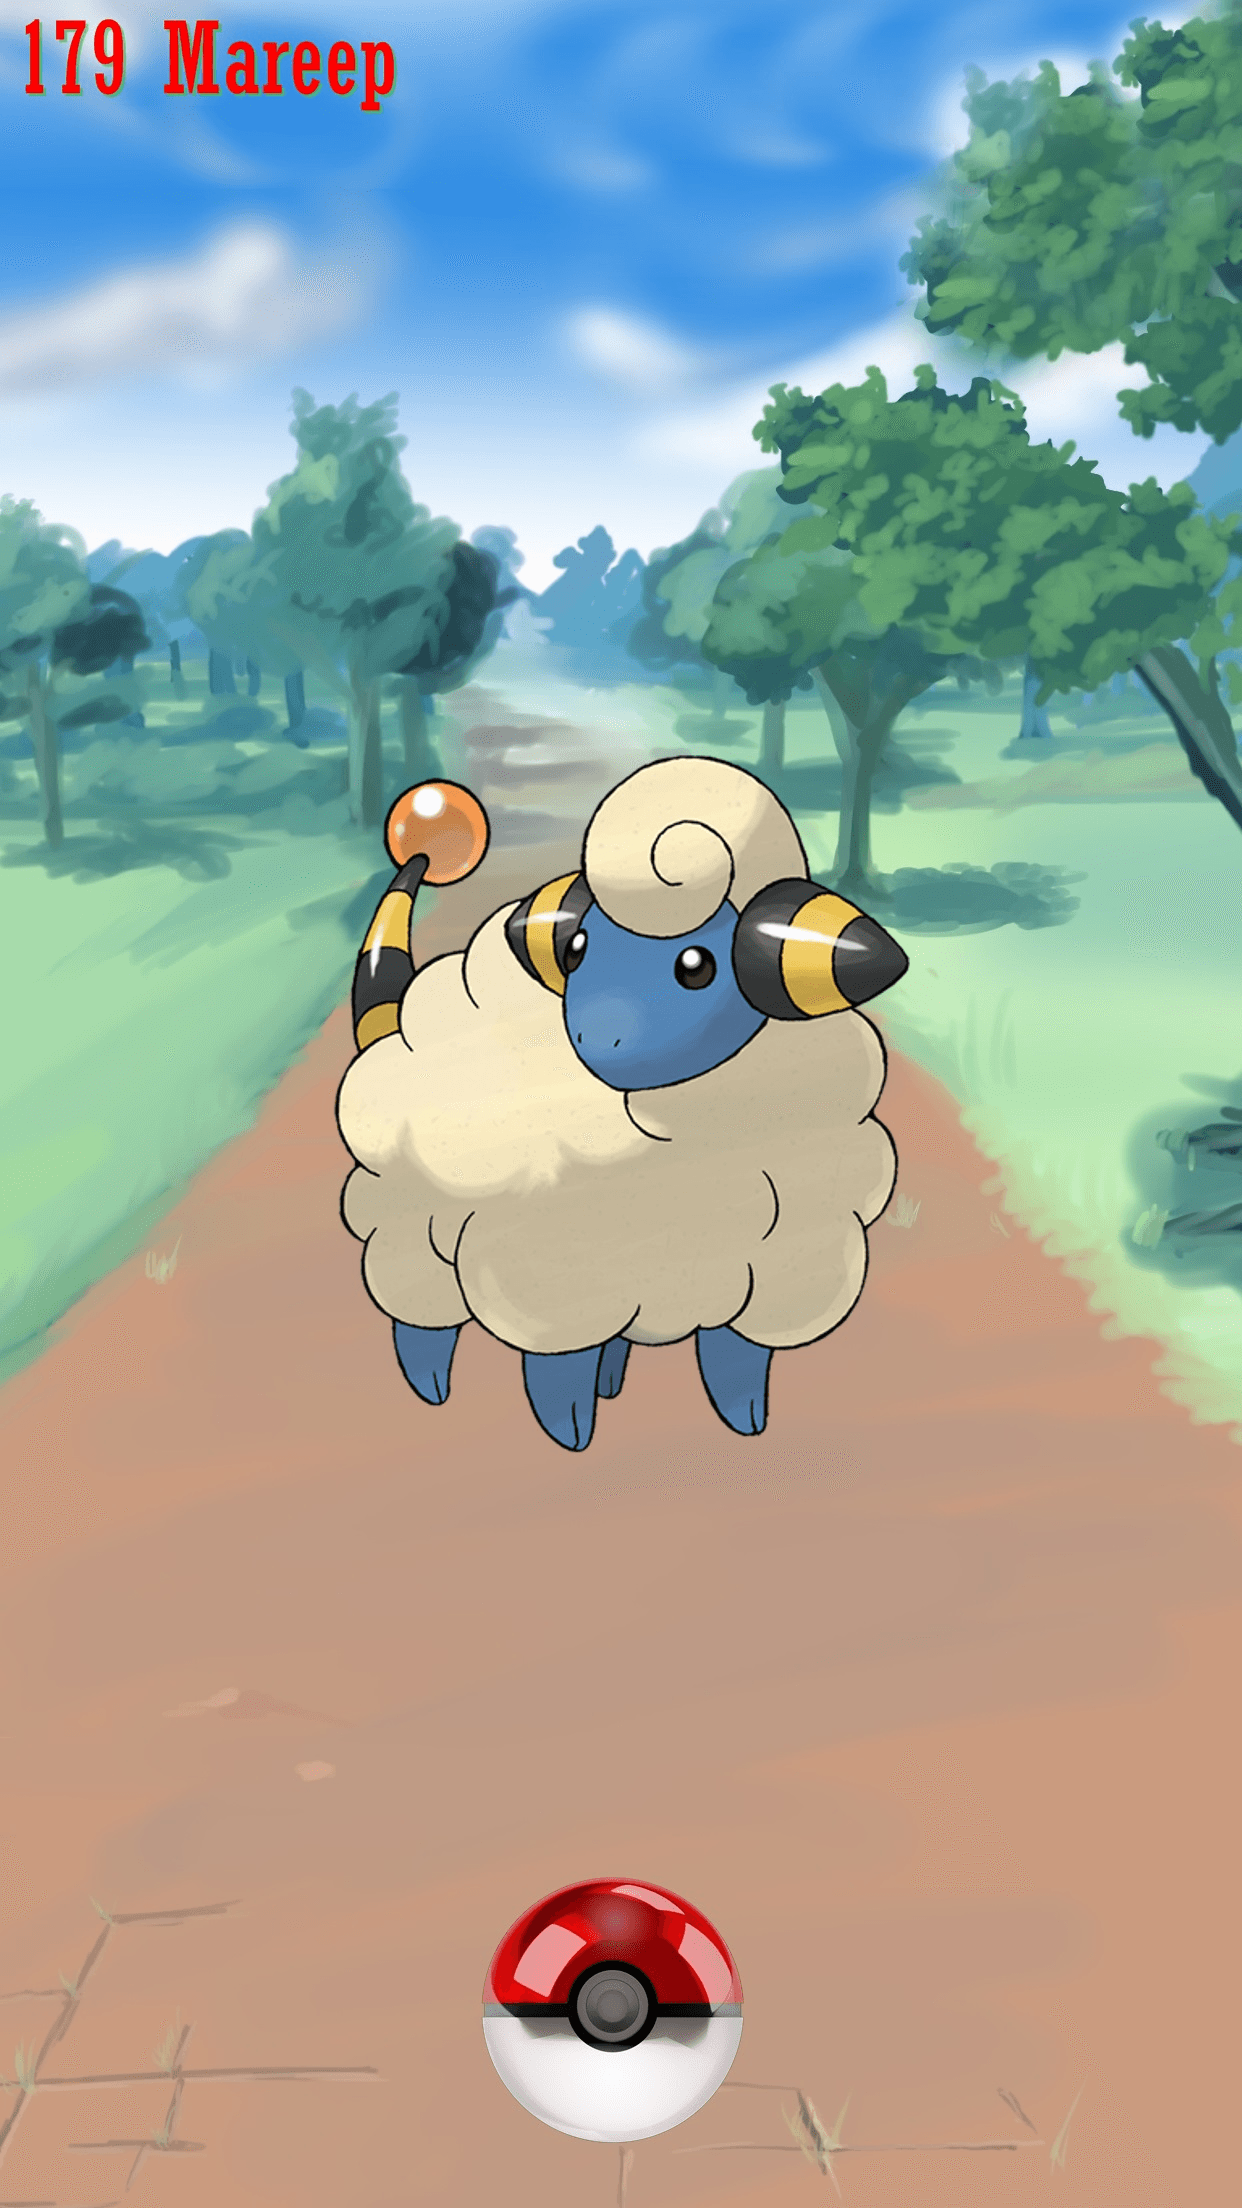 179 Street Pokeball Mareep | Wallpaper